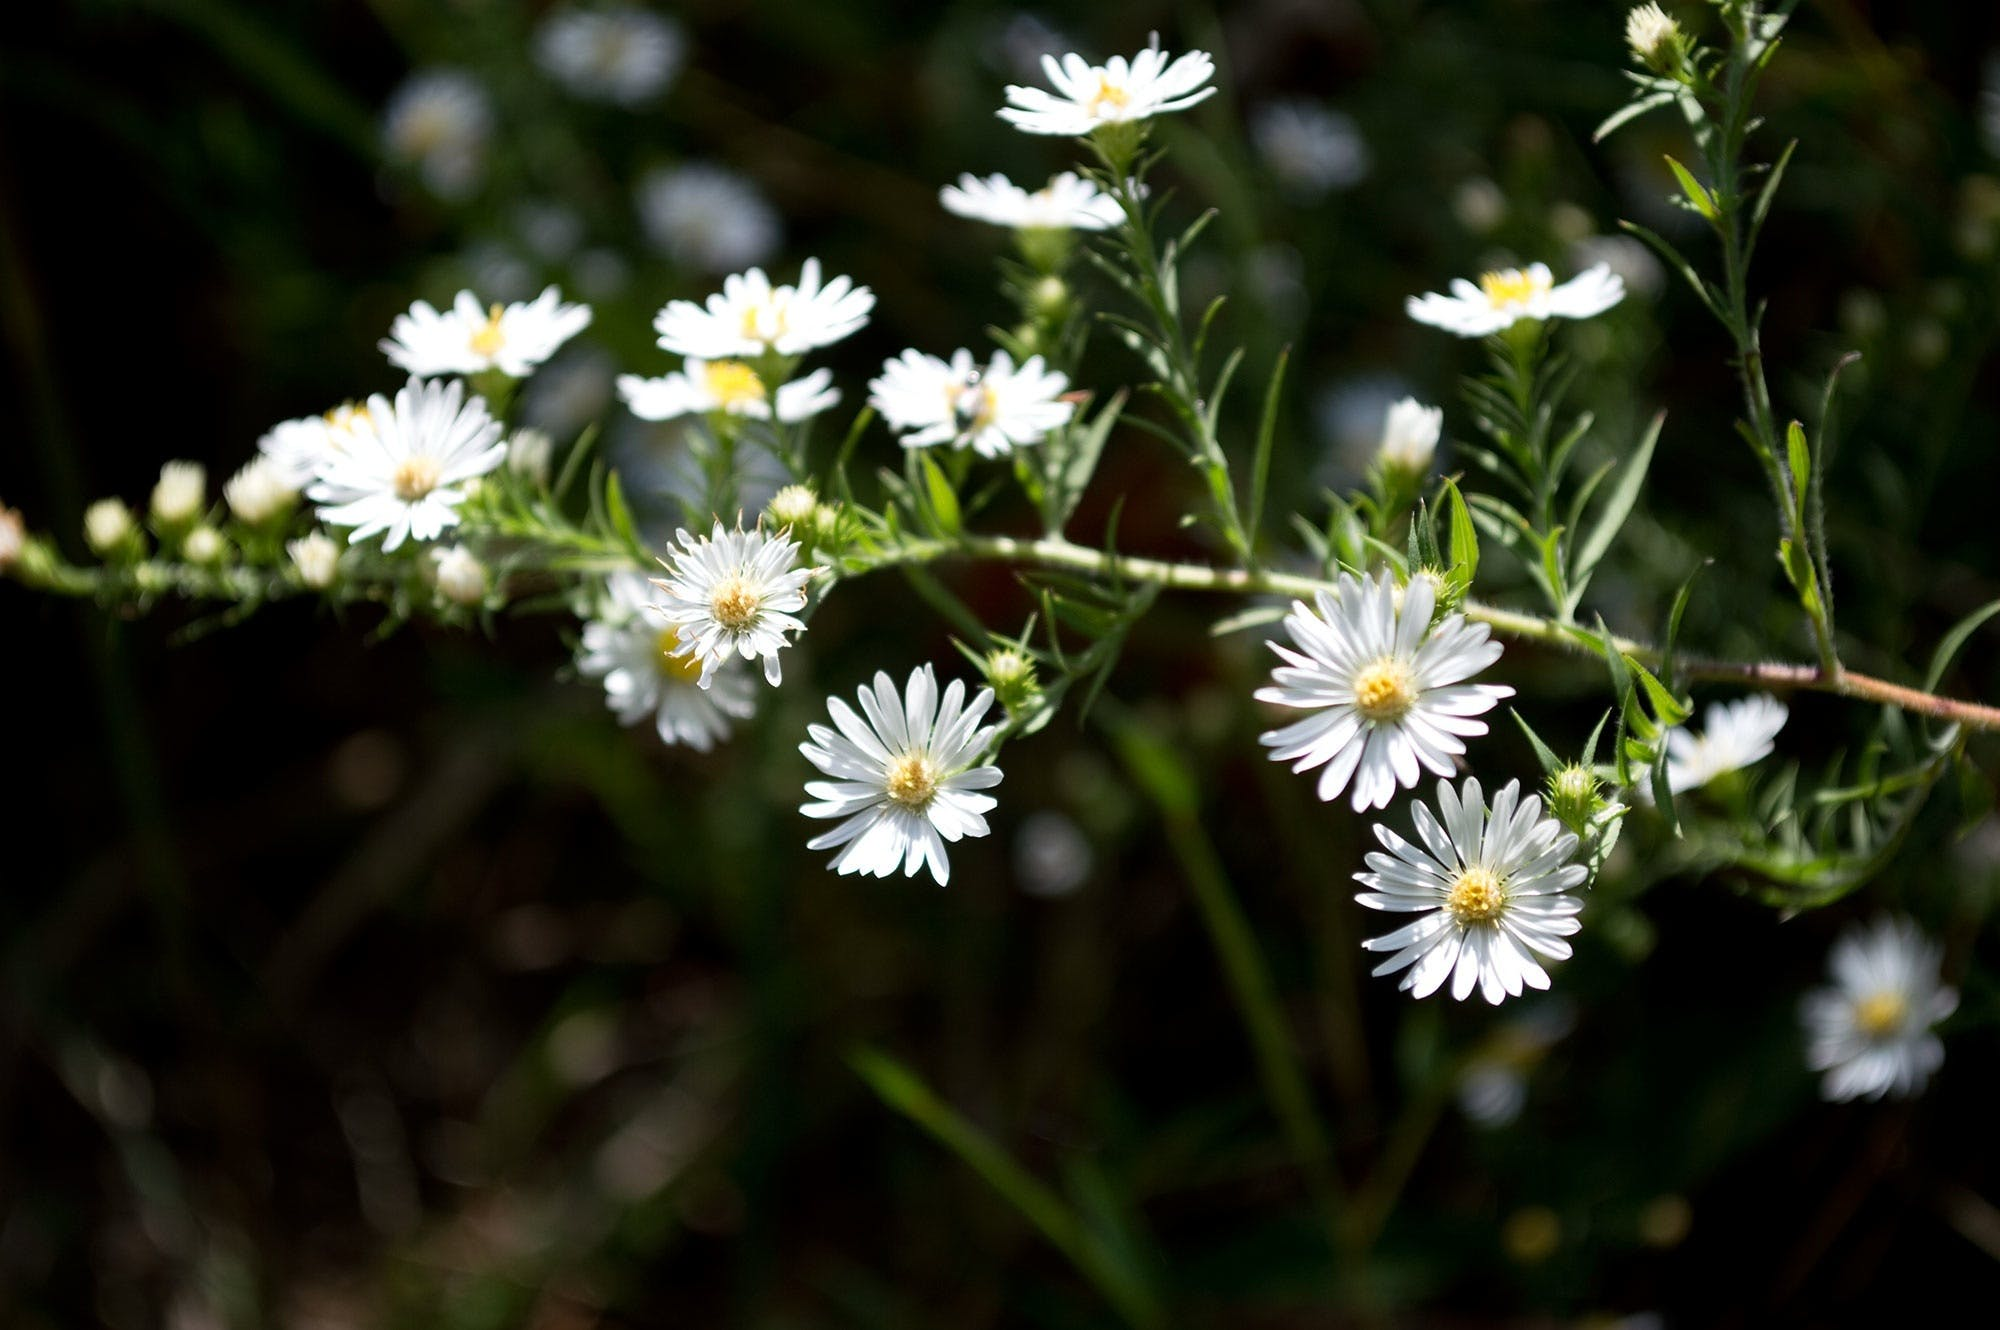 Shallow Photography of White Daisy during Daytime